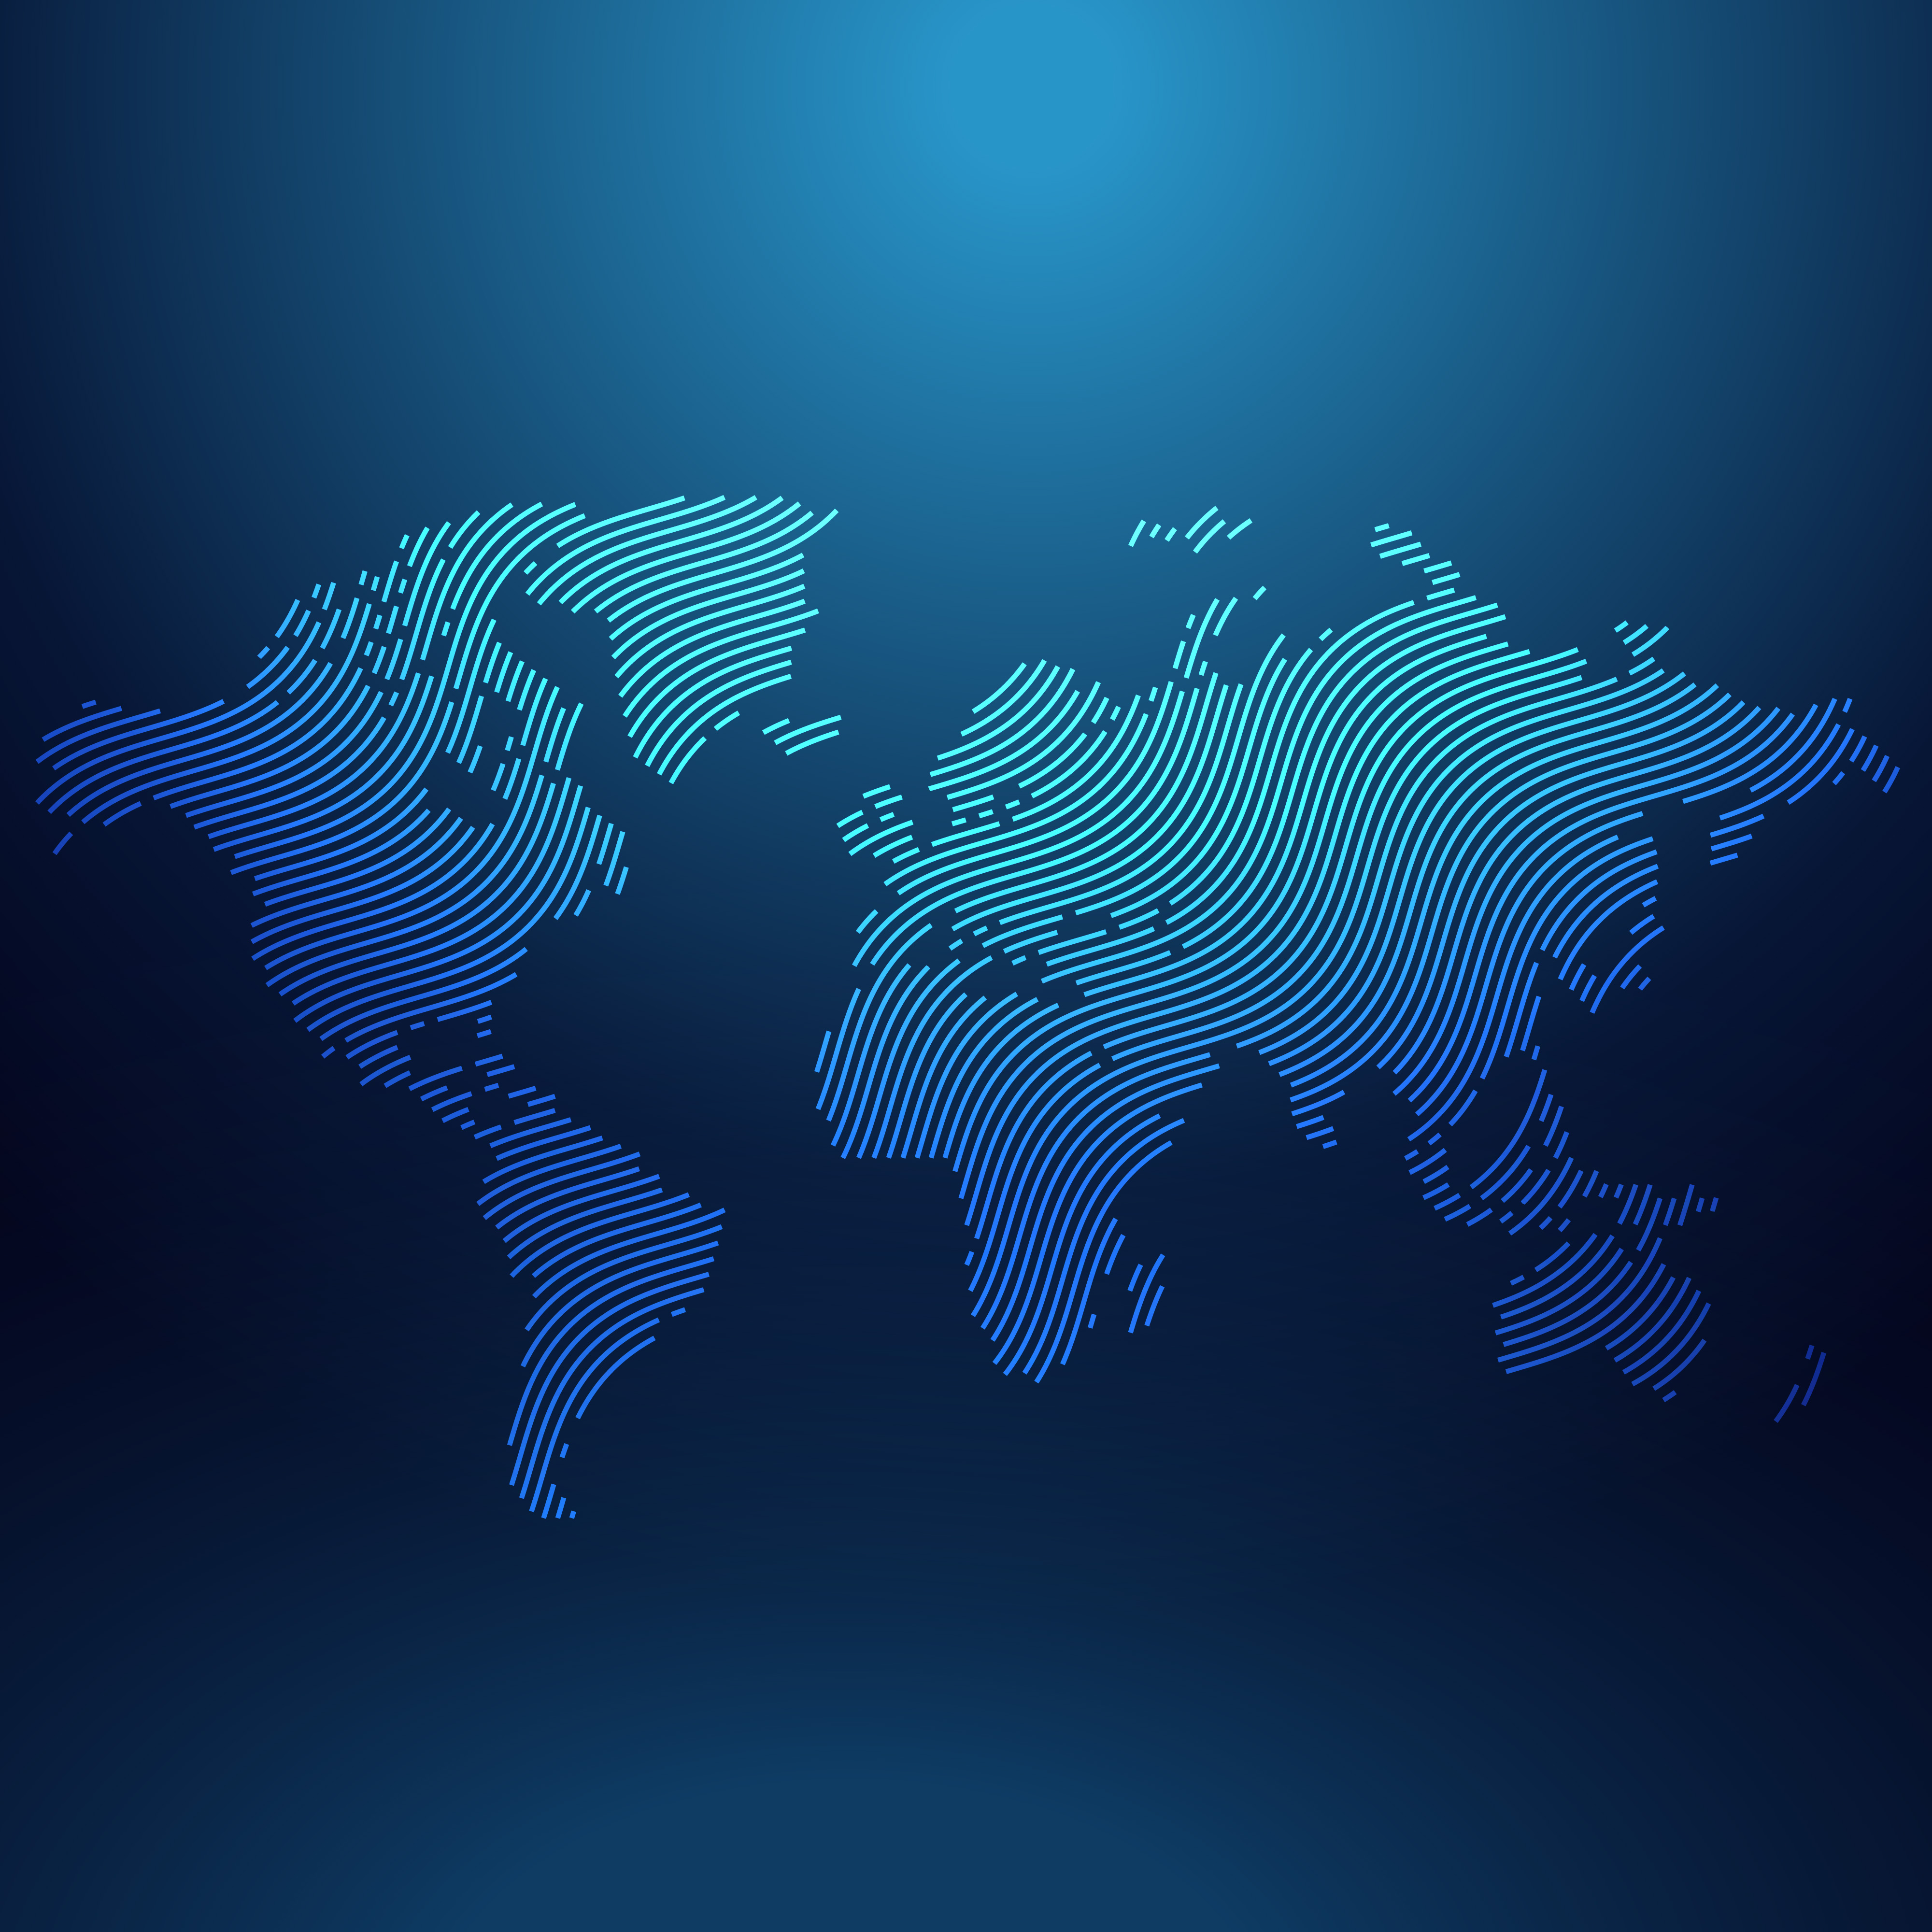 blue world map in wavy style vector - Download Free Vector ...